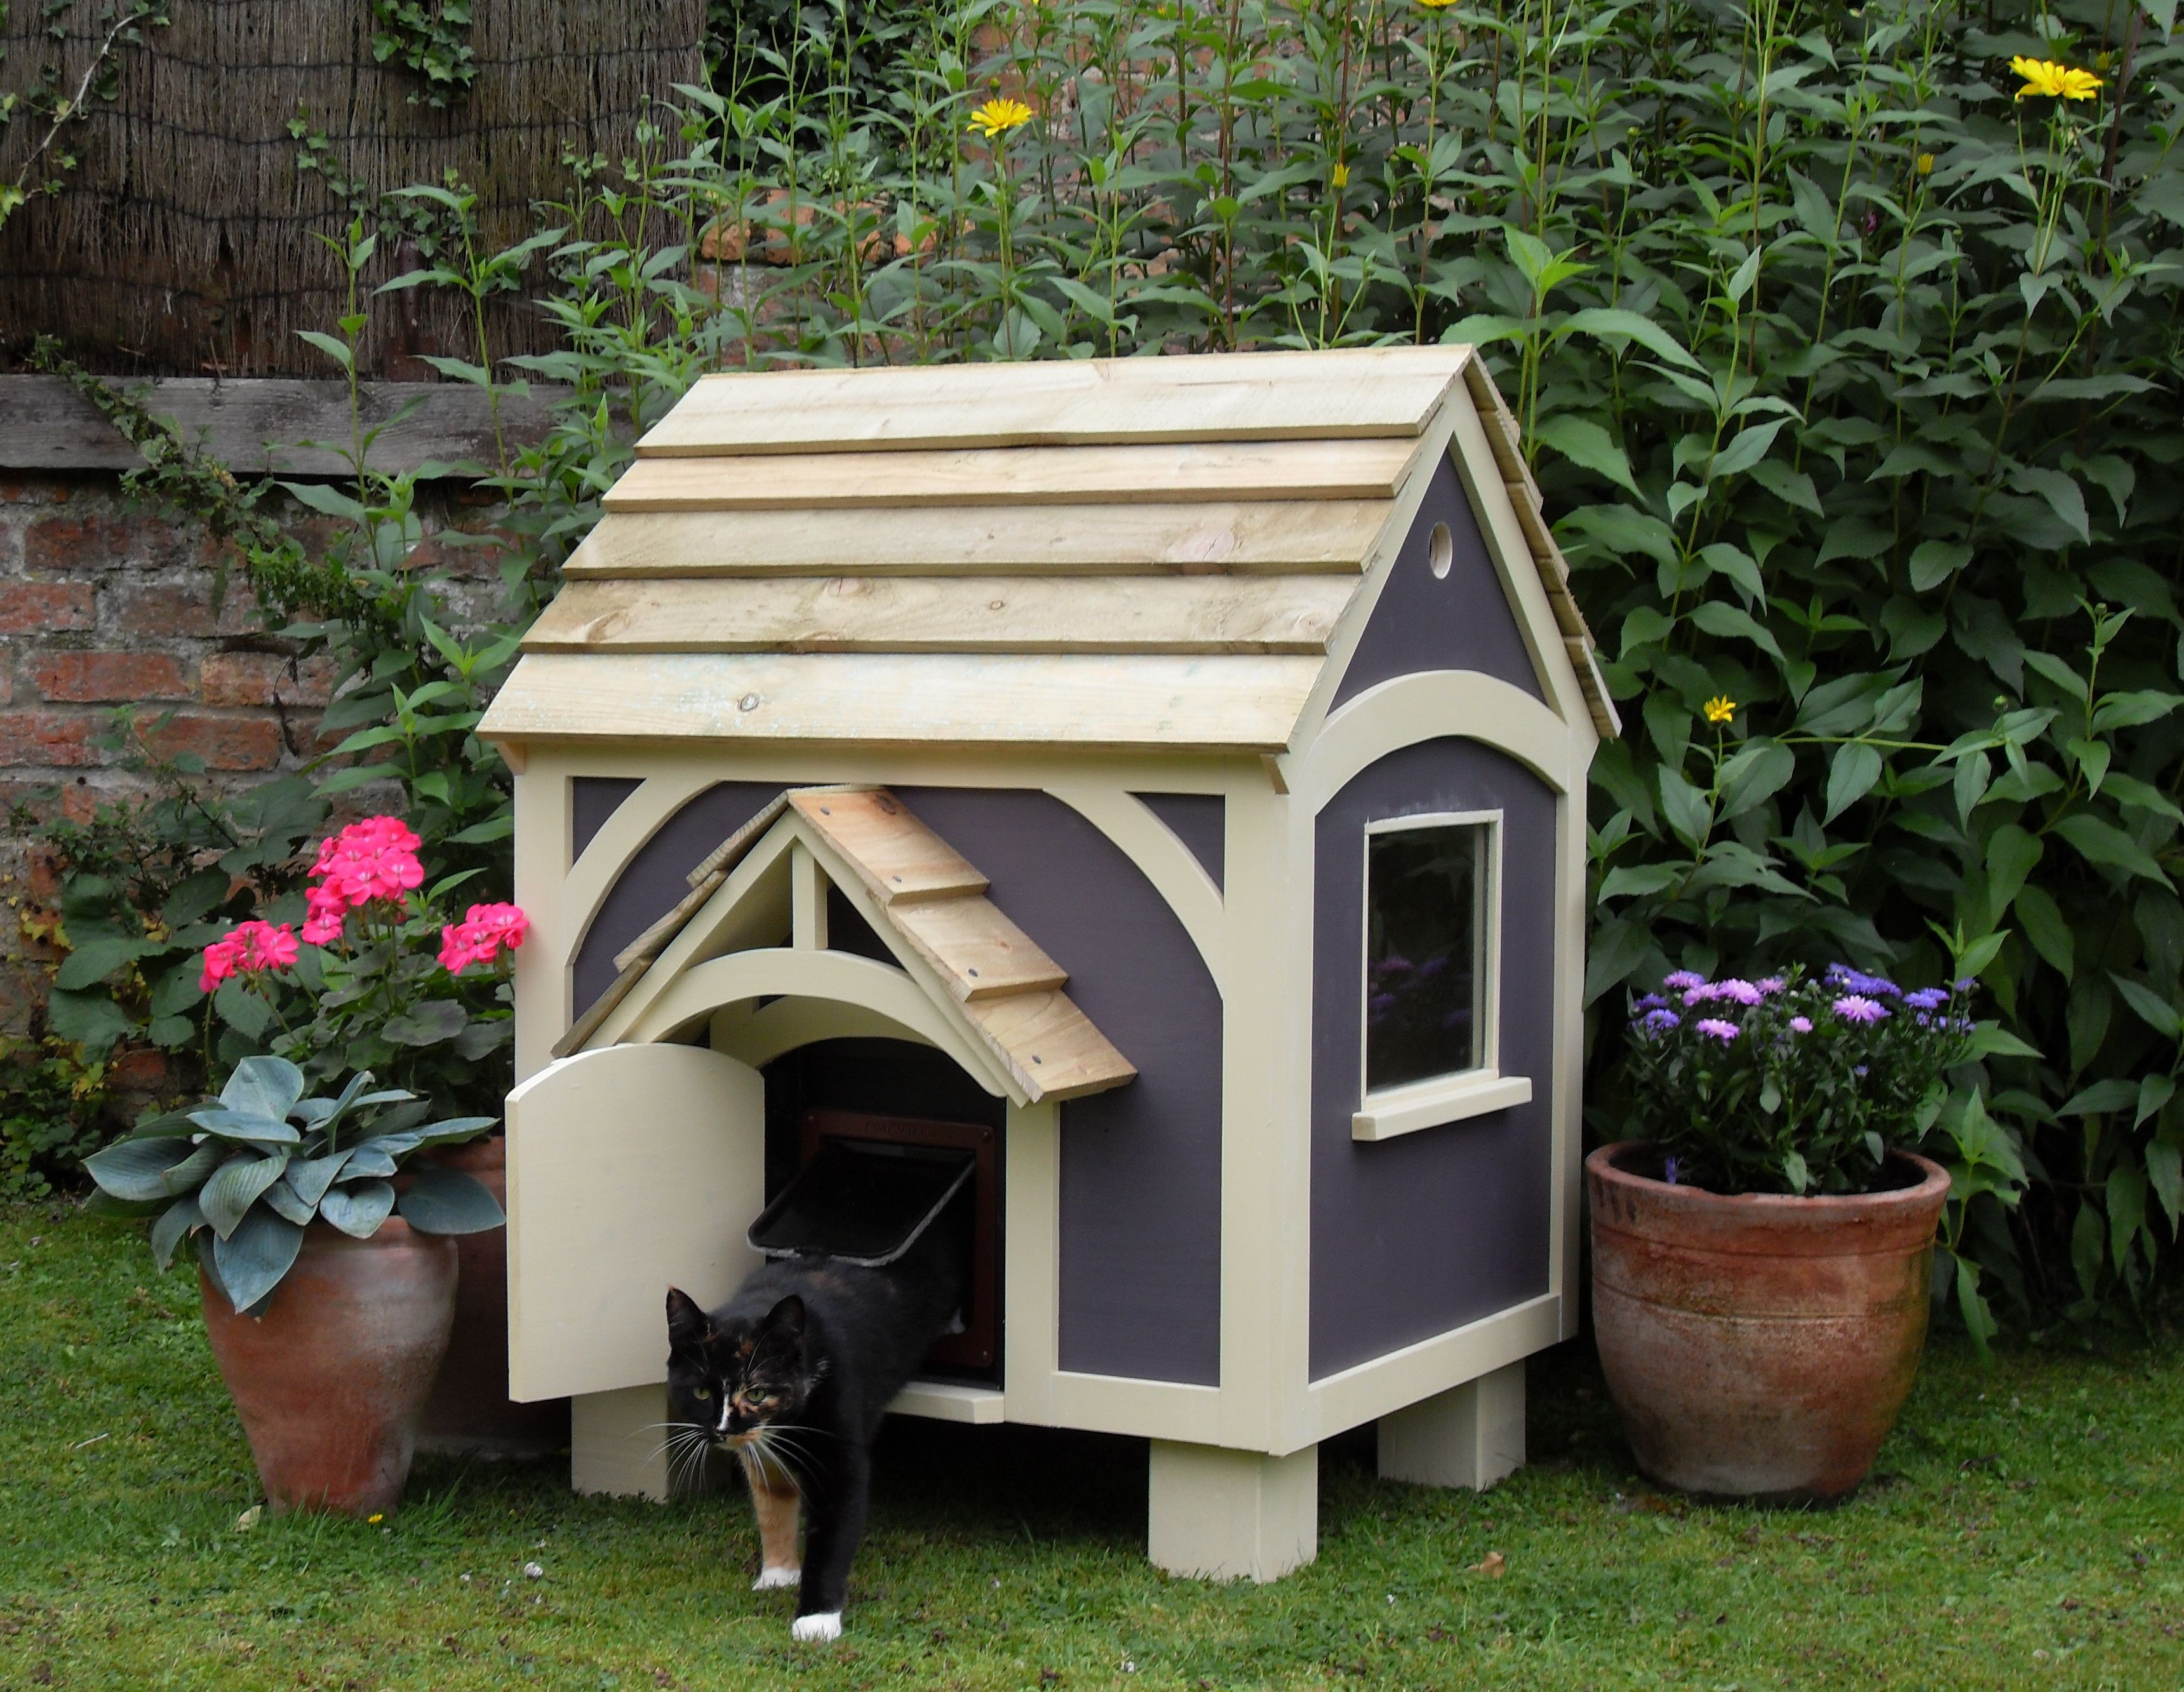 Outdoor Shelters For Pets : Cat house pictures g pinterest